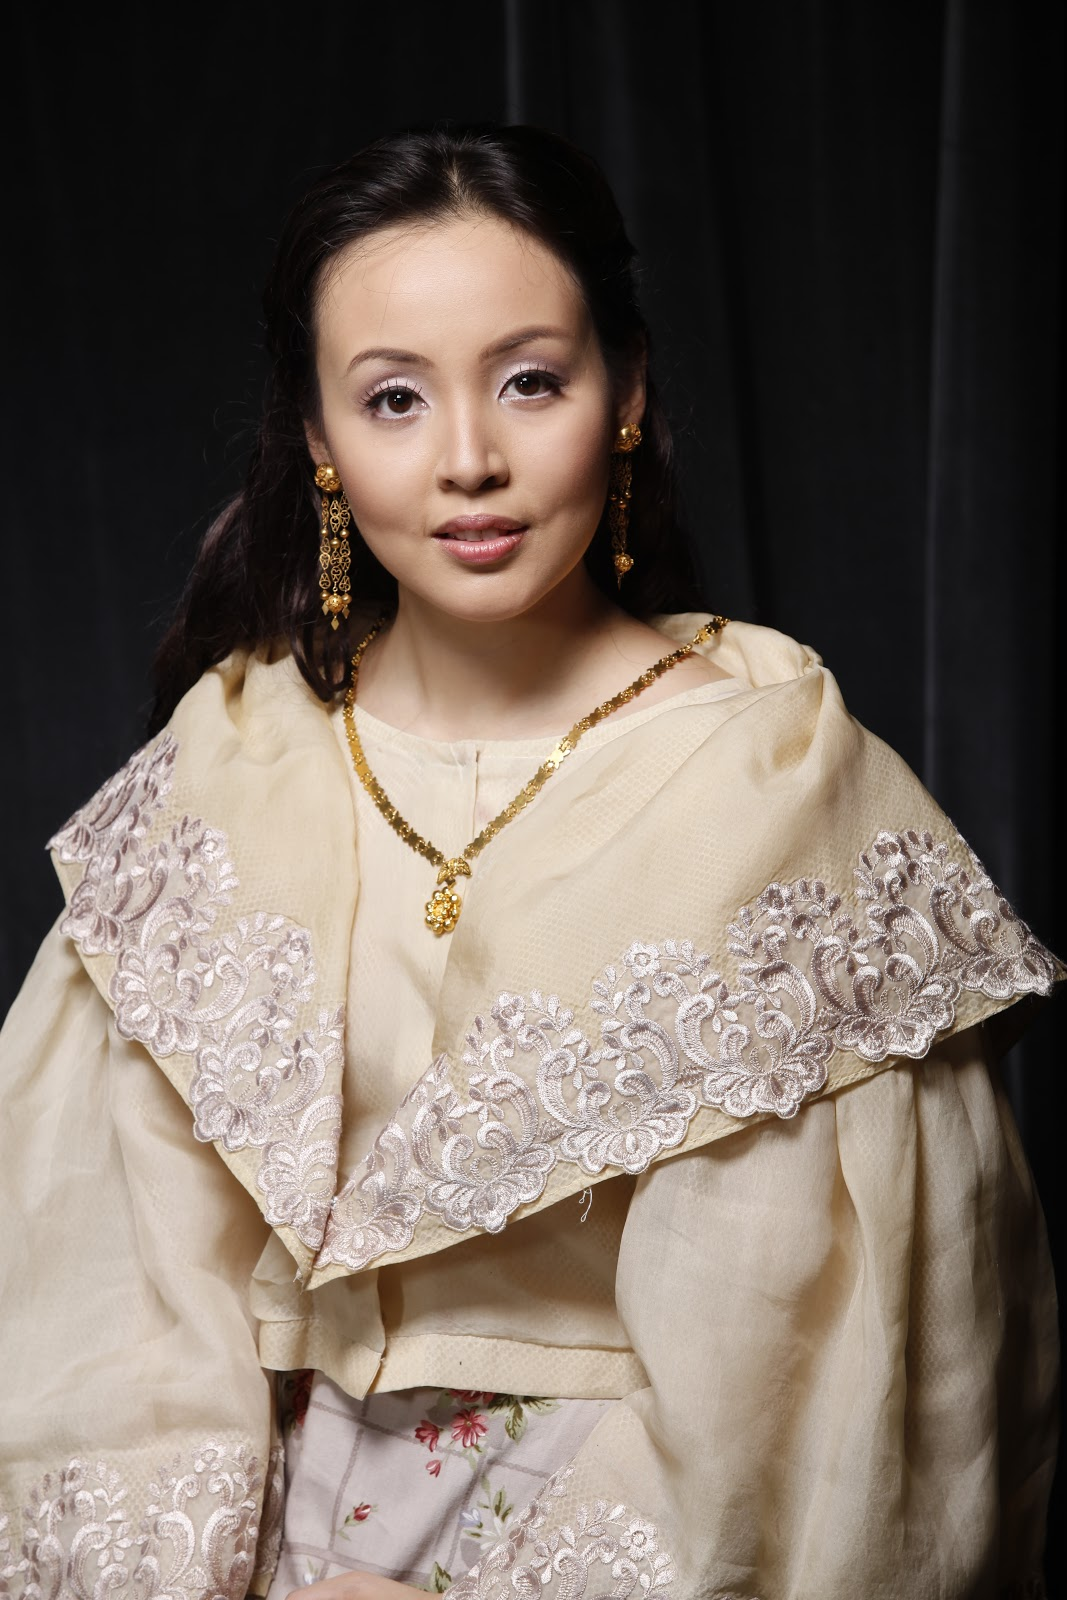 Philippine Costume of Maria Clara http://enjoyingwonderfulworld.blogspot.com/2011/08/noli-me-tangere-musical.html